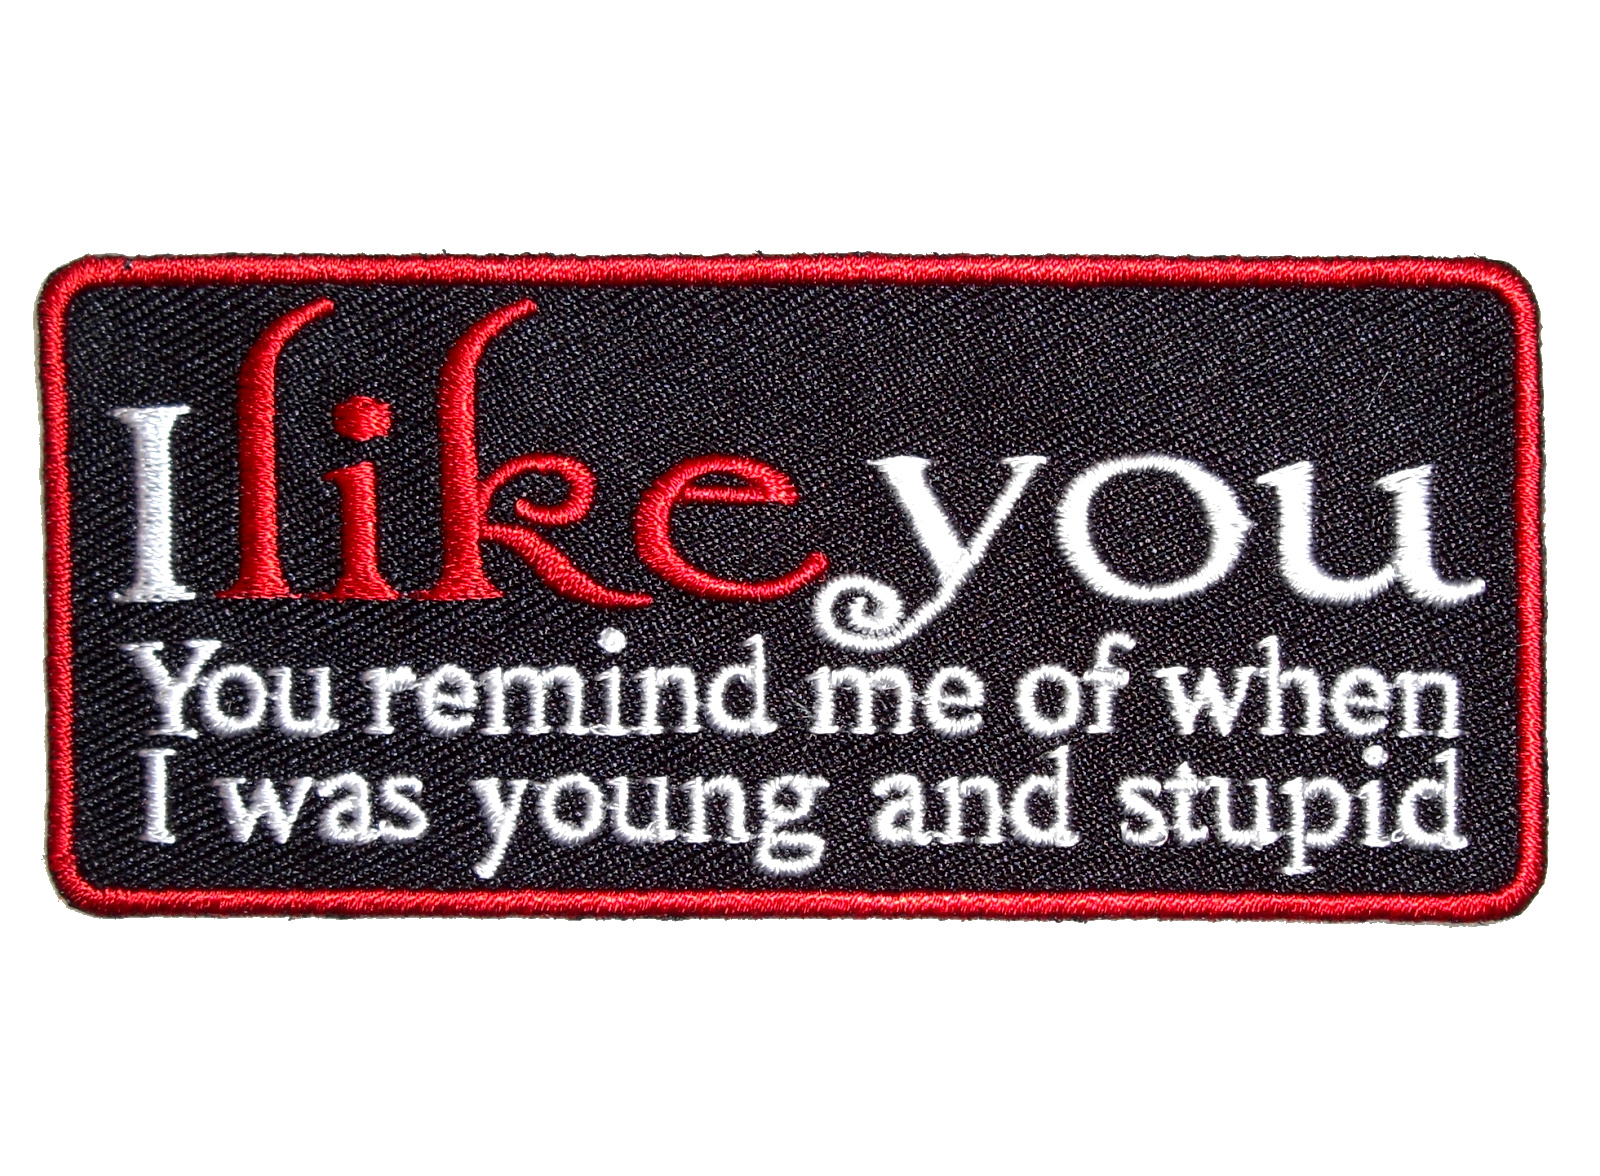 I Like You Remind Me When Young And Stupid Patch